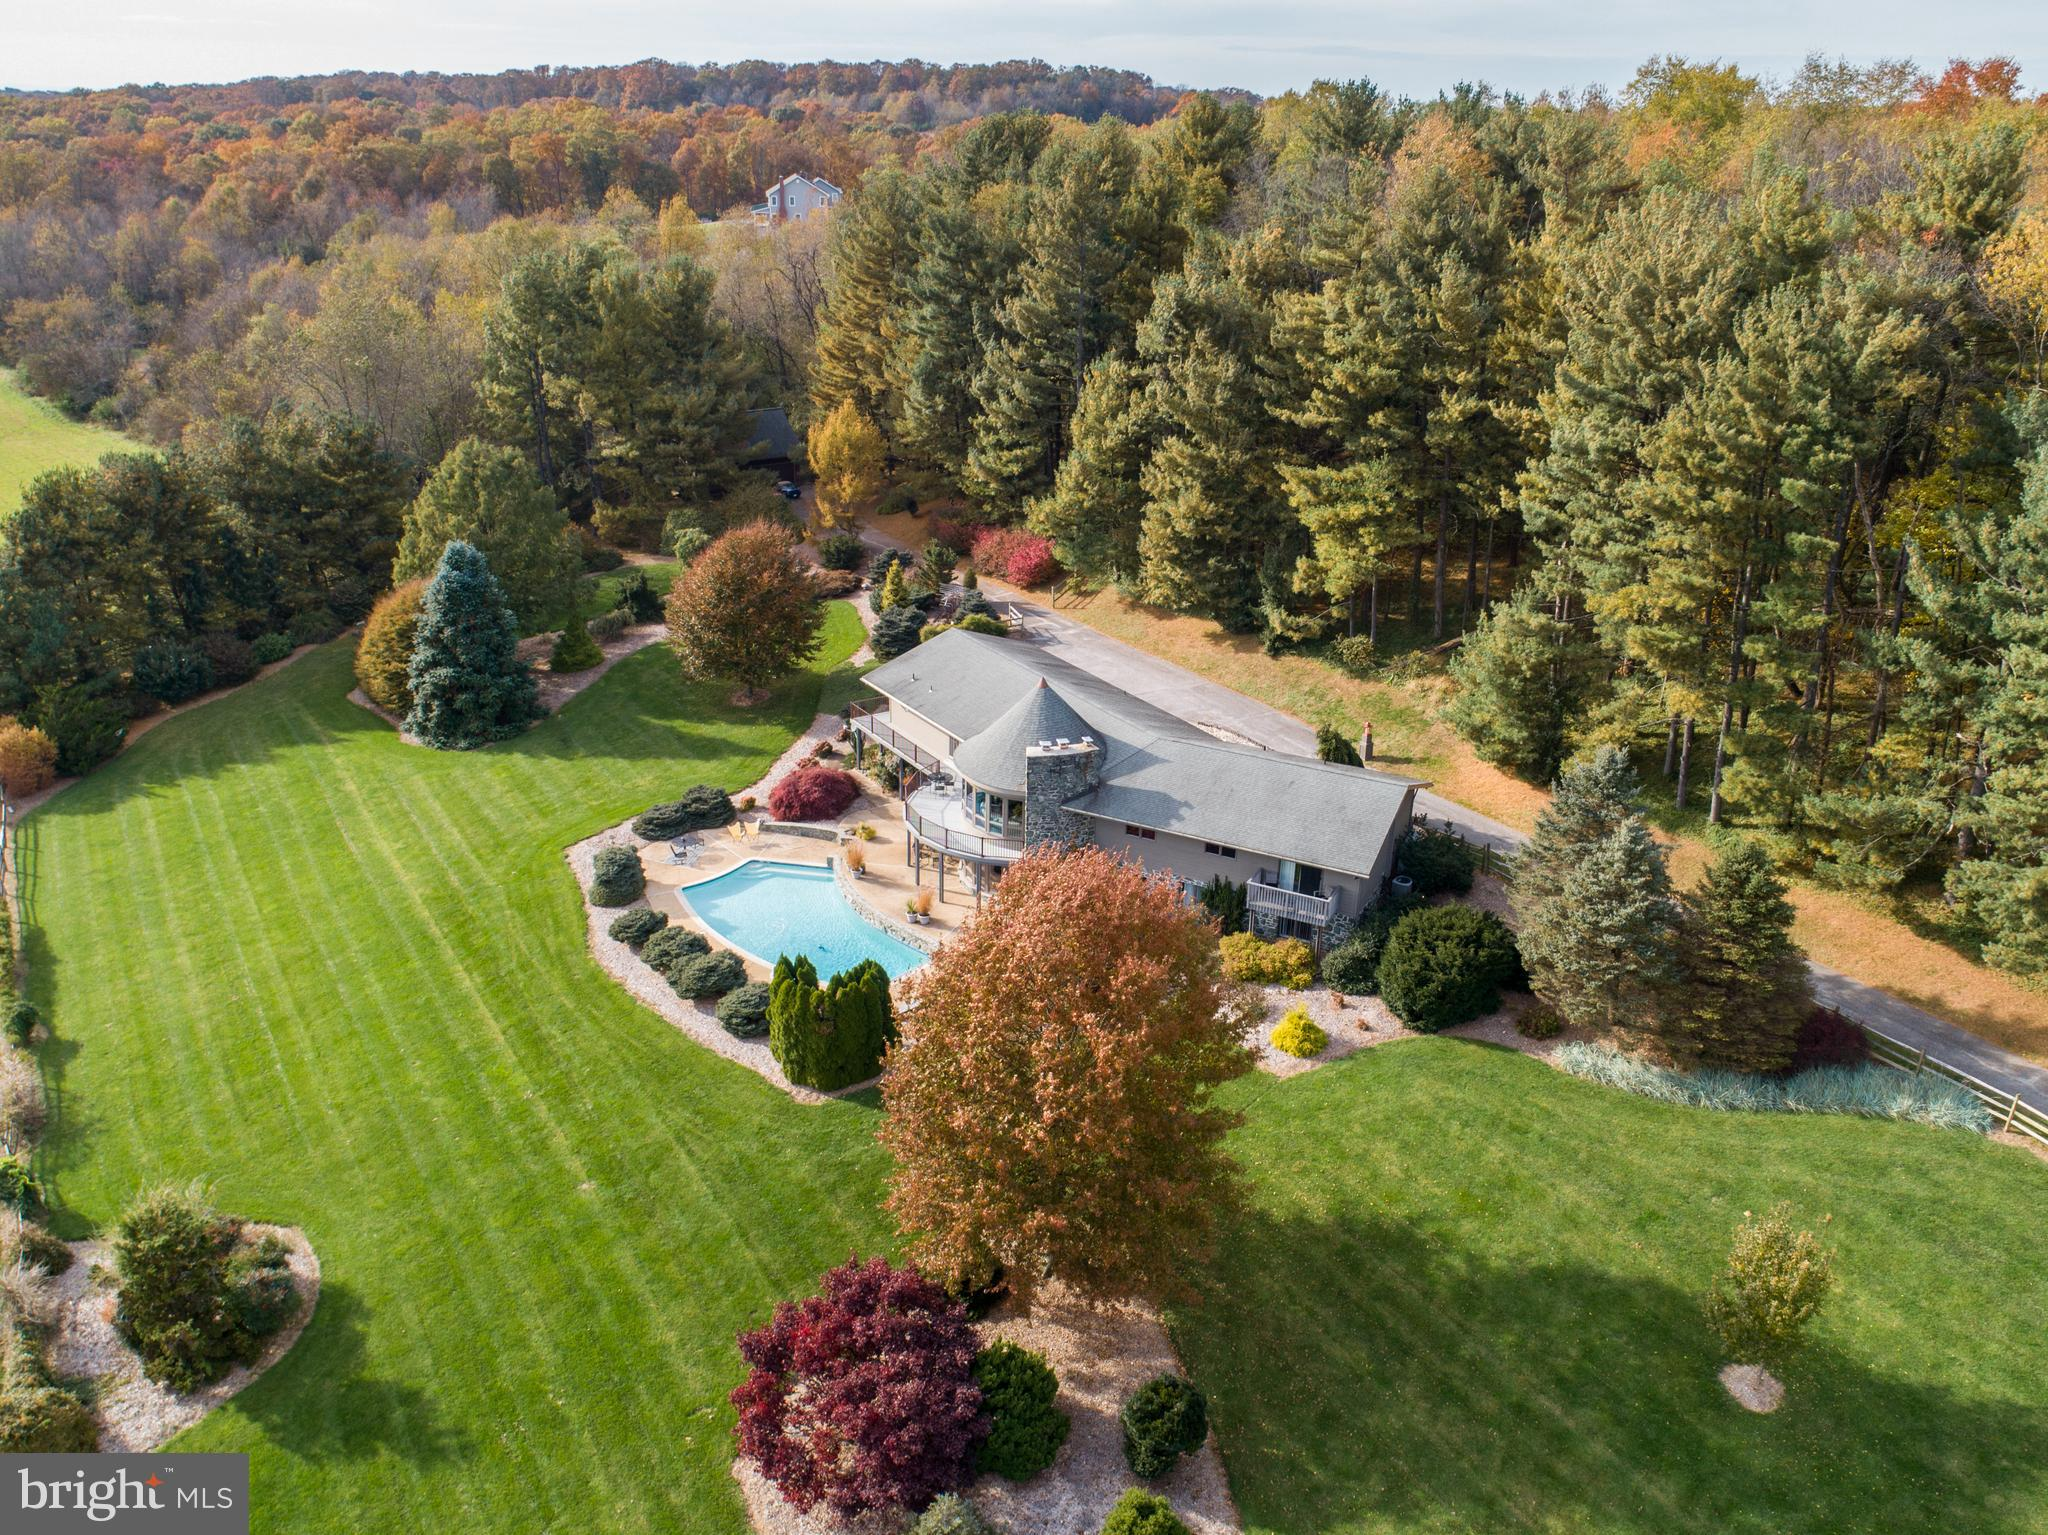 1120 SILVER RUN VALLEY ROAD, WESTMINSTER, MD 21158